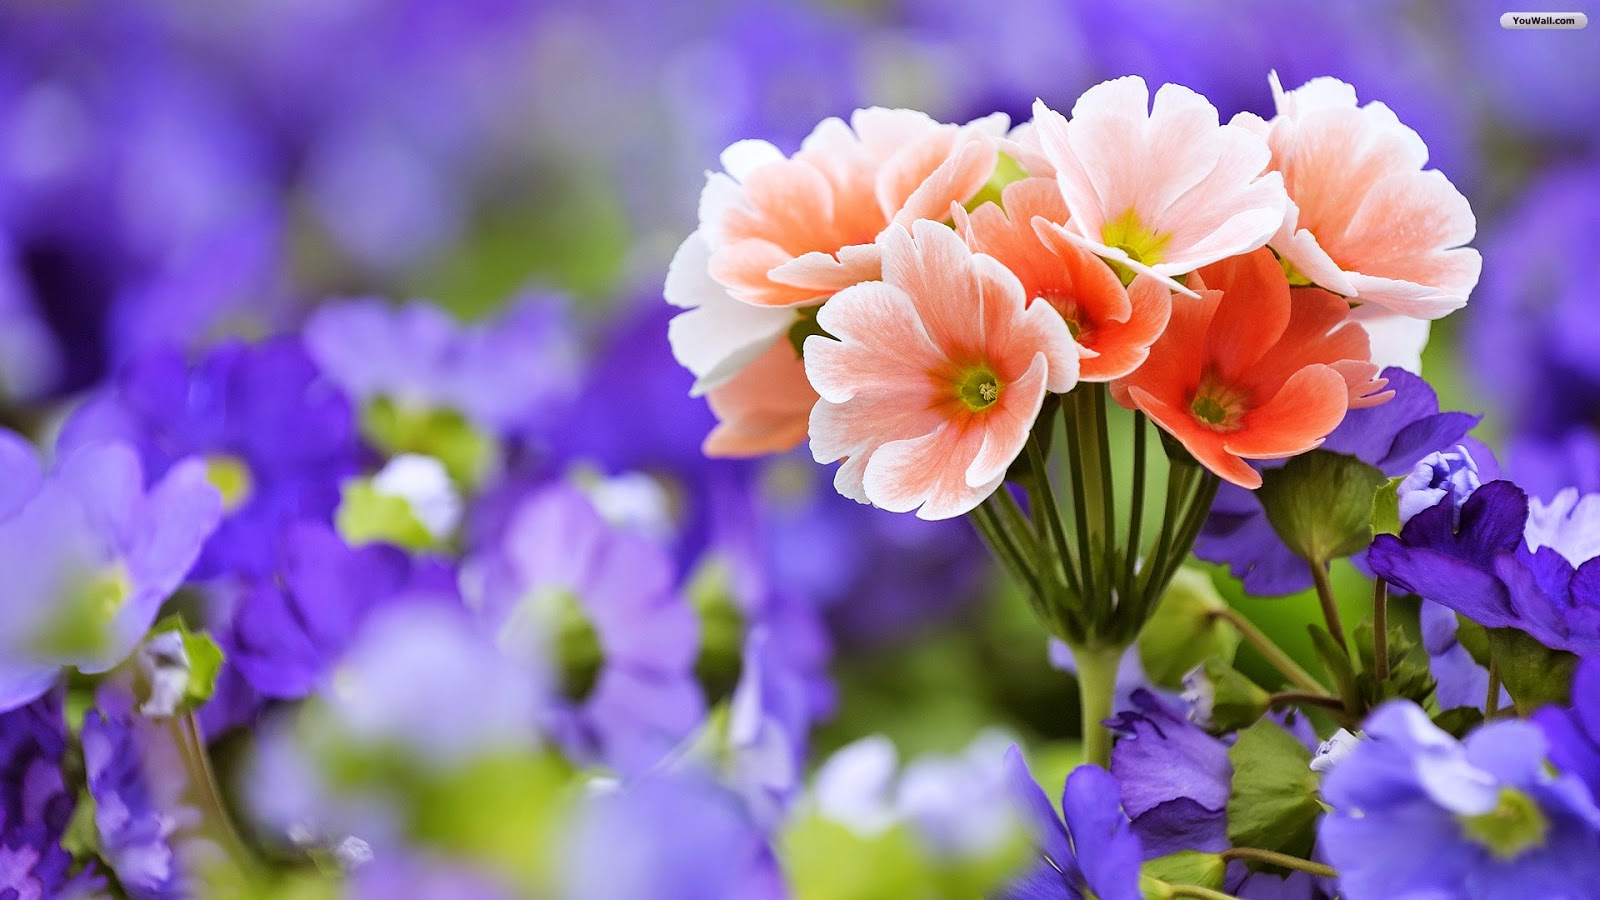 Most Beautiful Flowers In The World Flower With Styles